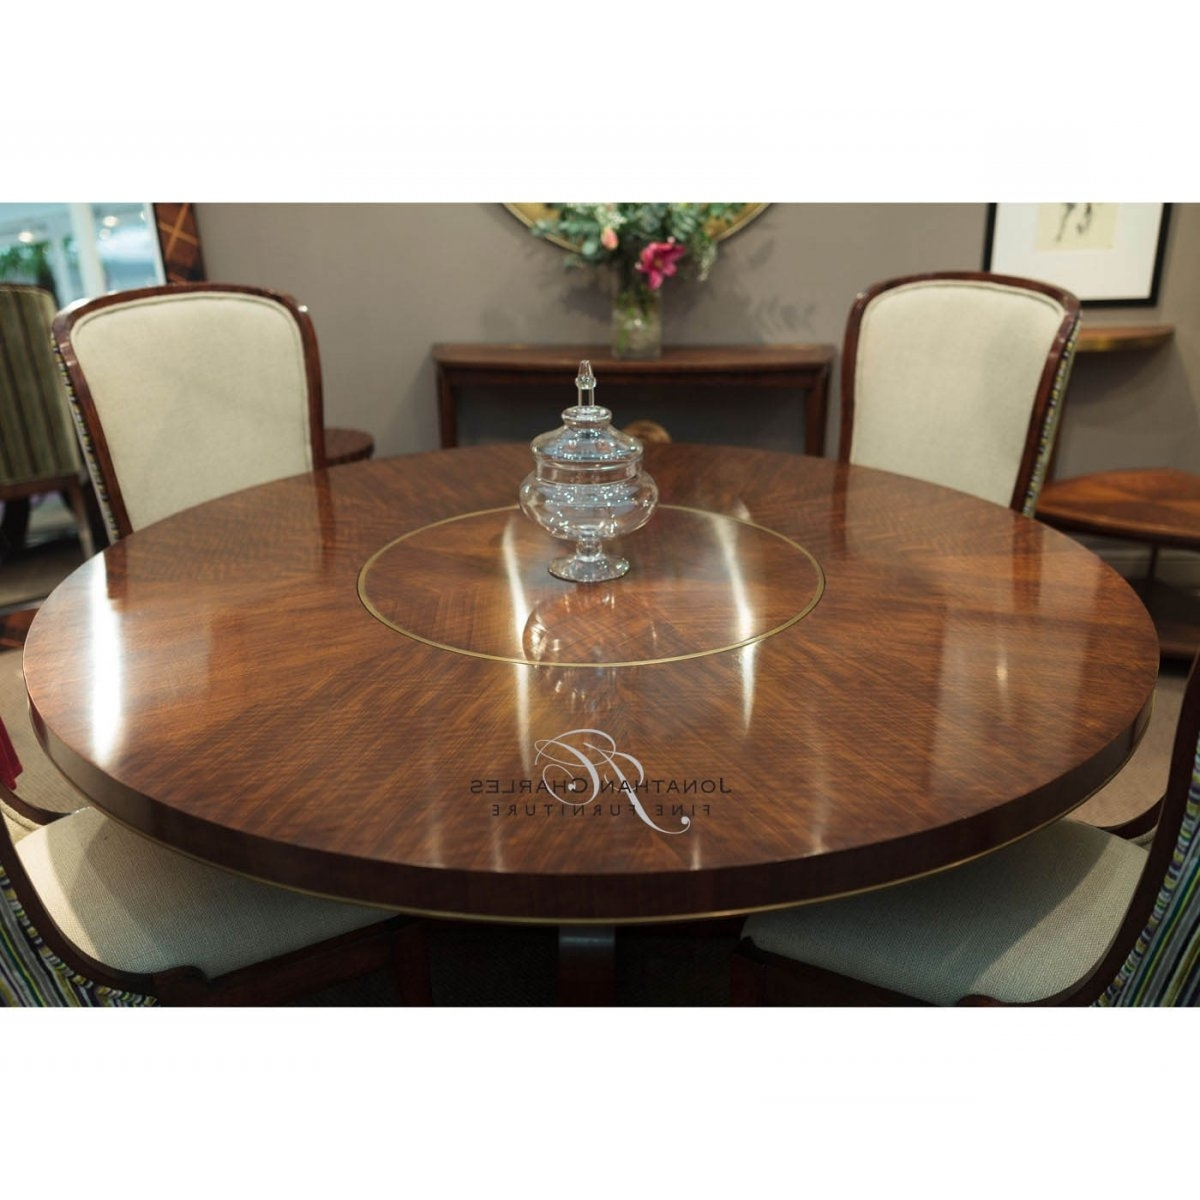 8 Seater Dining Tables Within Popular Square Dining Table 8 Seater Glass Dining Room Table And Chairs (Gallery 17 of 25)